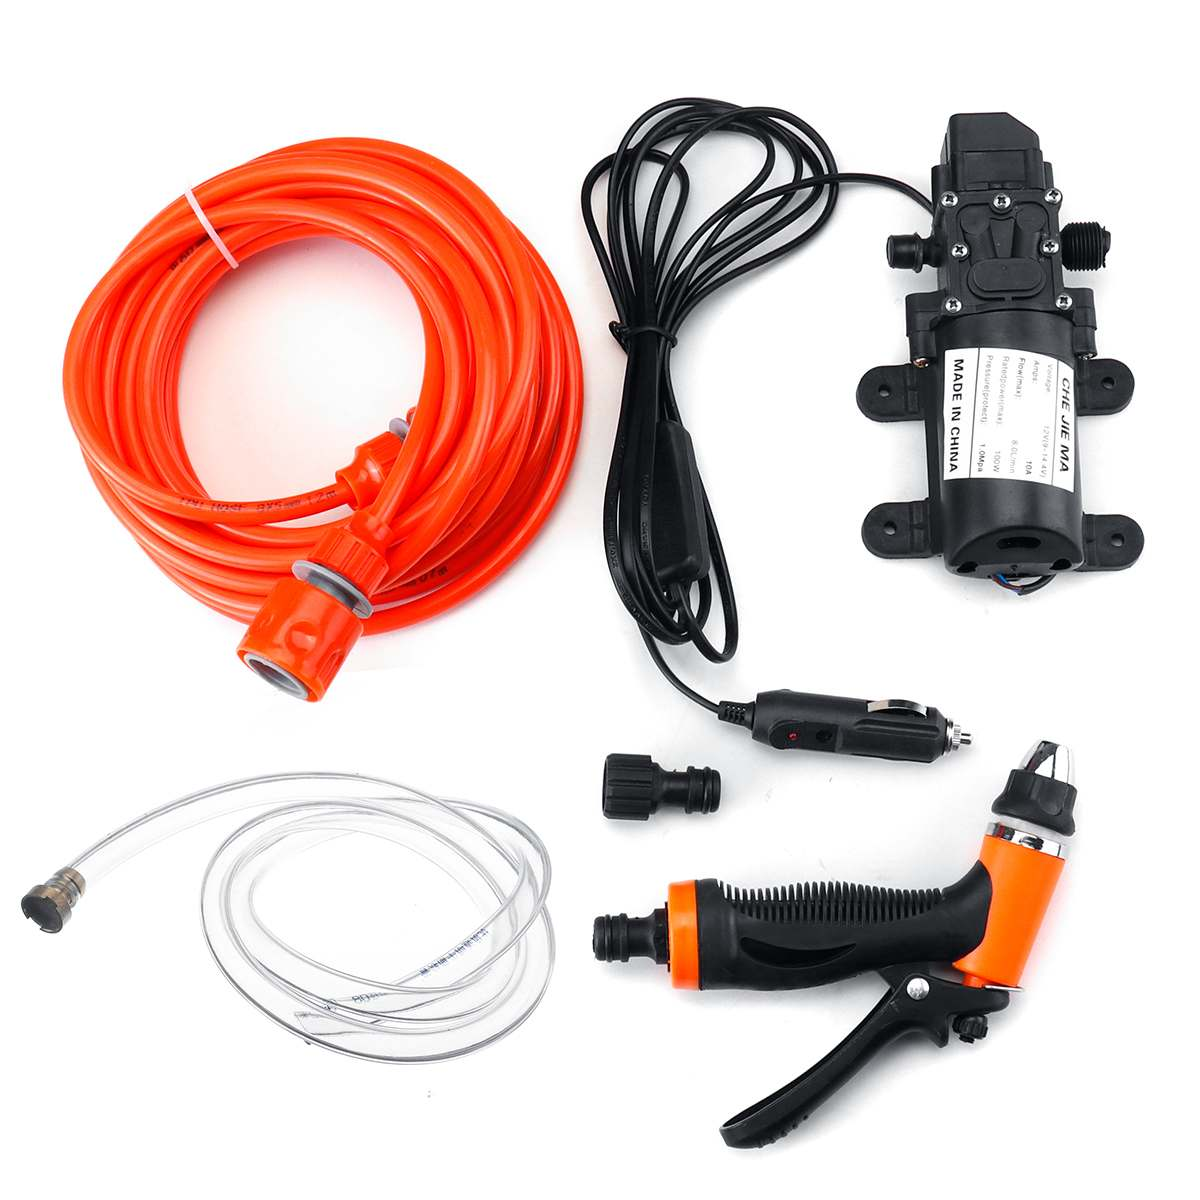 DC 12V 160PSI Electric Water Pump High Pressure Diaphragm Self Priming Water Pump Sprayer Car Wash 12 V image